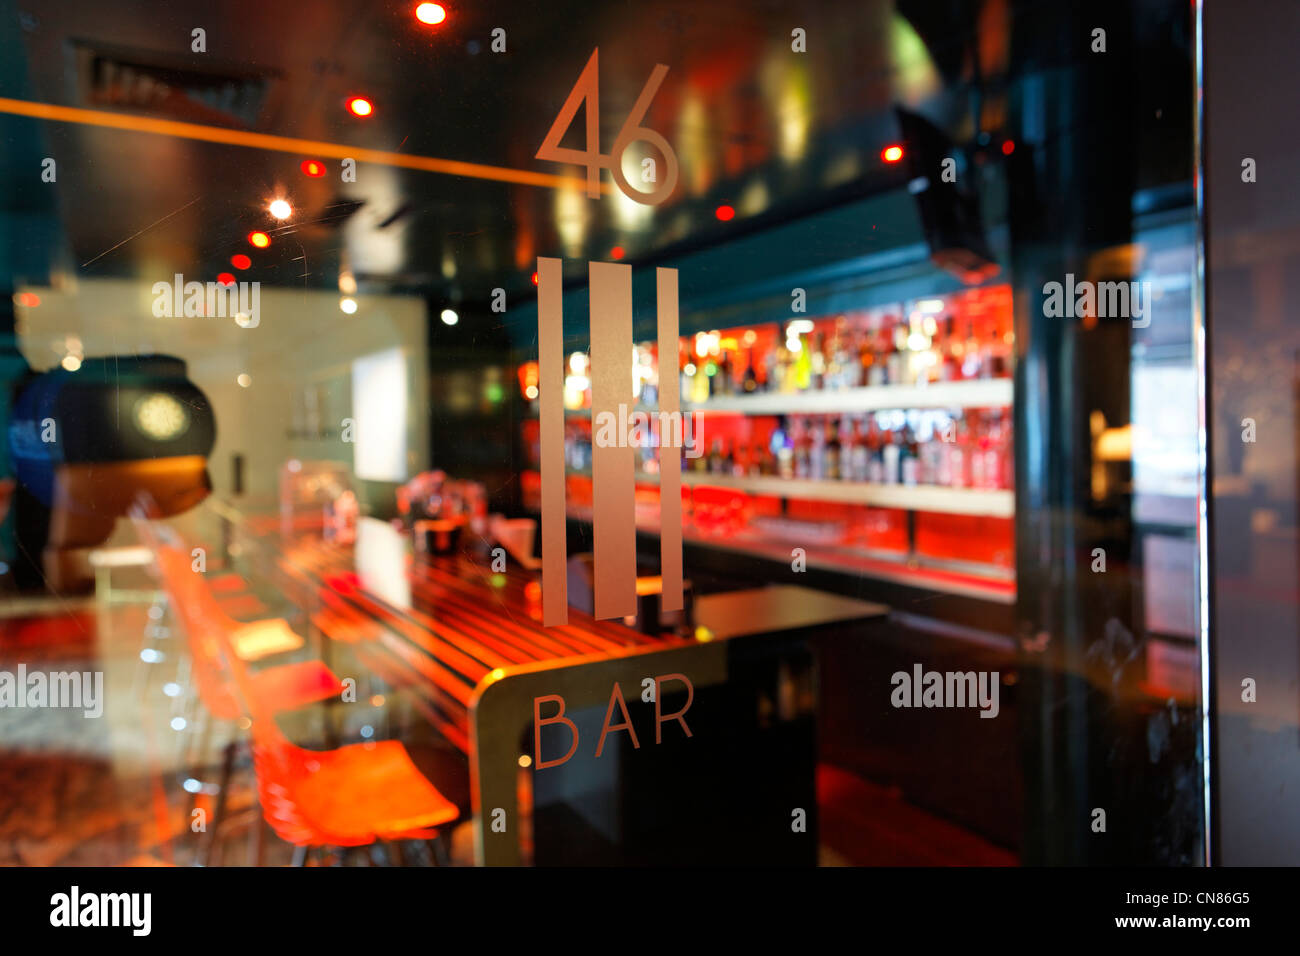 United States, New York City, Manhattan, Midtown, Times Square, Paramount hotel, bar 46, 235 West 46th street - Stock Image